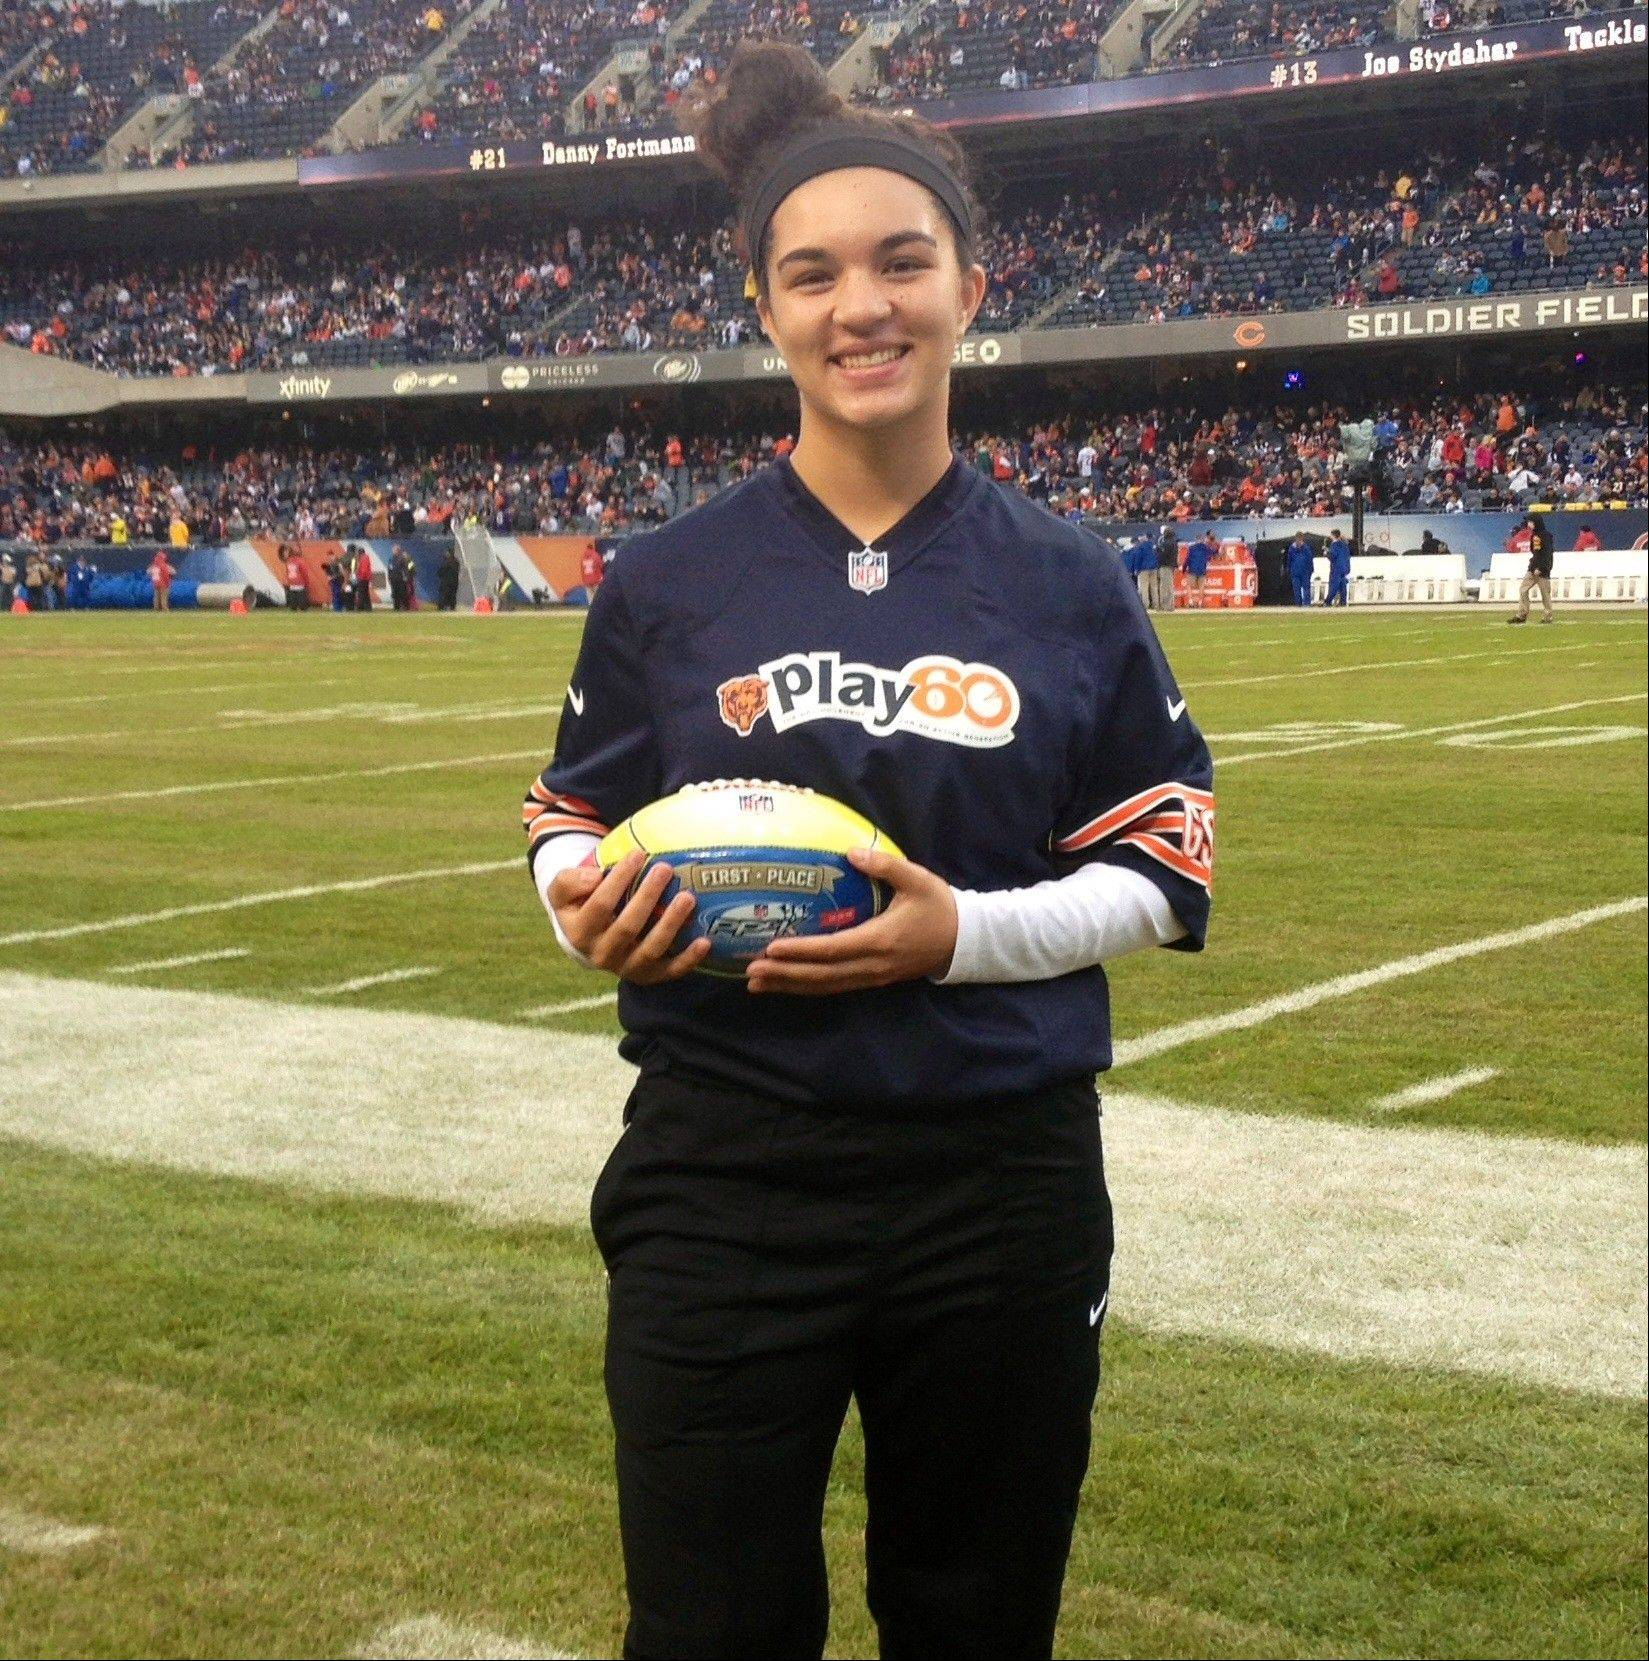 Des Plaines girl, 14, wins NFL's Punt, Pass and Kick contest